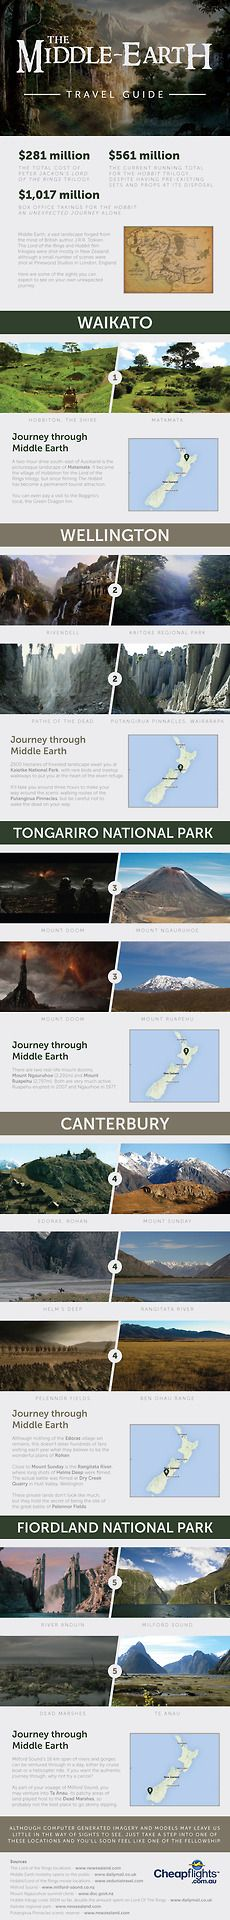 The Middle-Earth Travel Guide (via NeoMam Infographic Studios, h/t Cheapflights.com.au and GalleyCat)